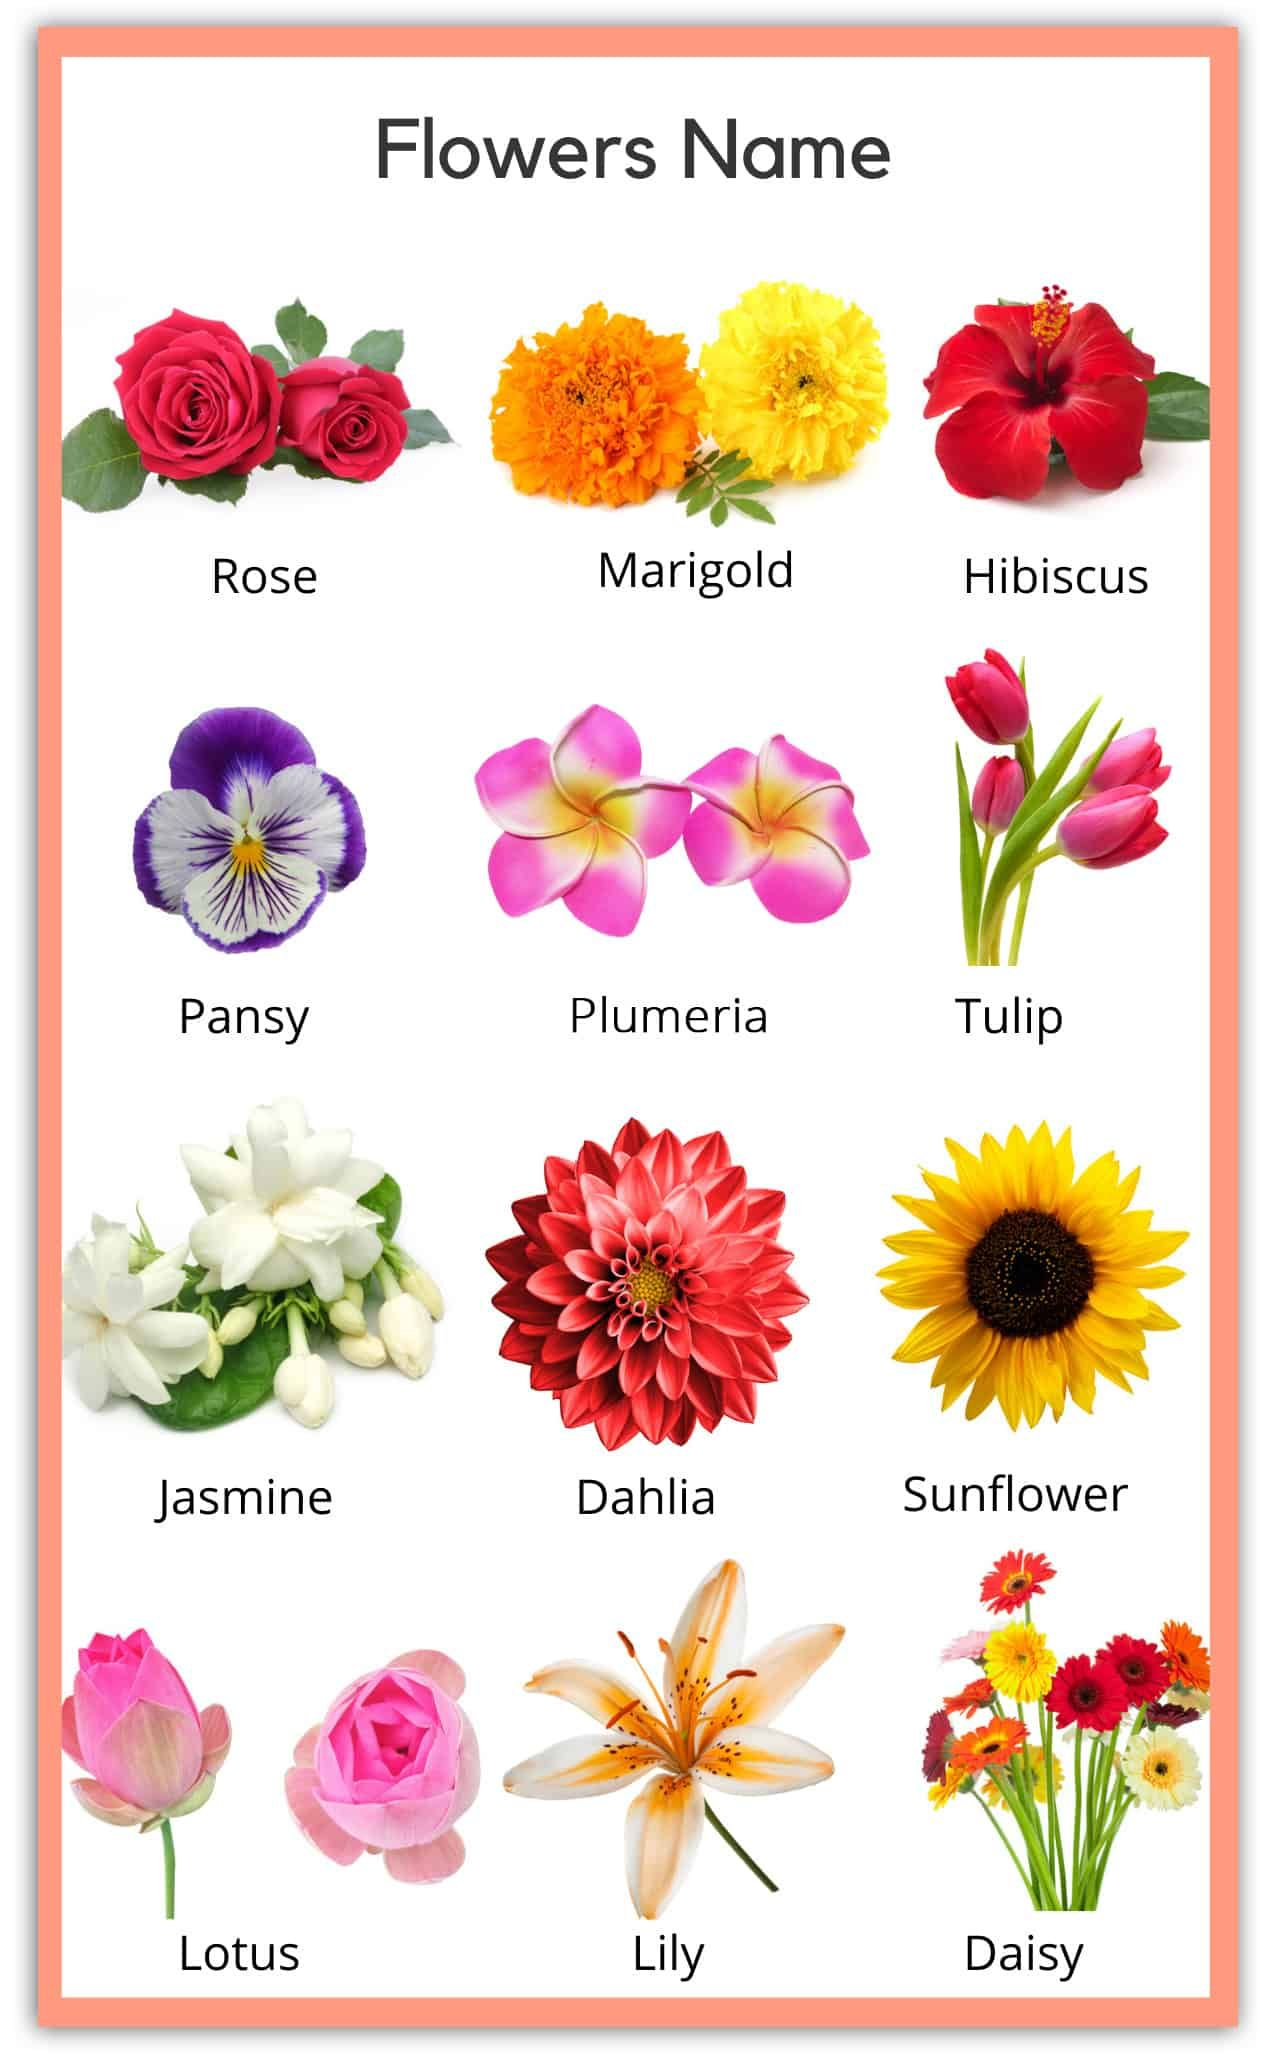 Flowers Name In English Pictures Videos Charts Ira Parenting In 2020 Flower Names All Flowers Name Flower Printable